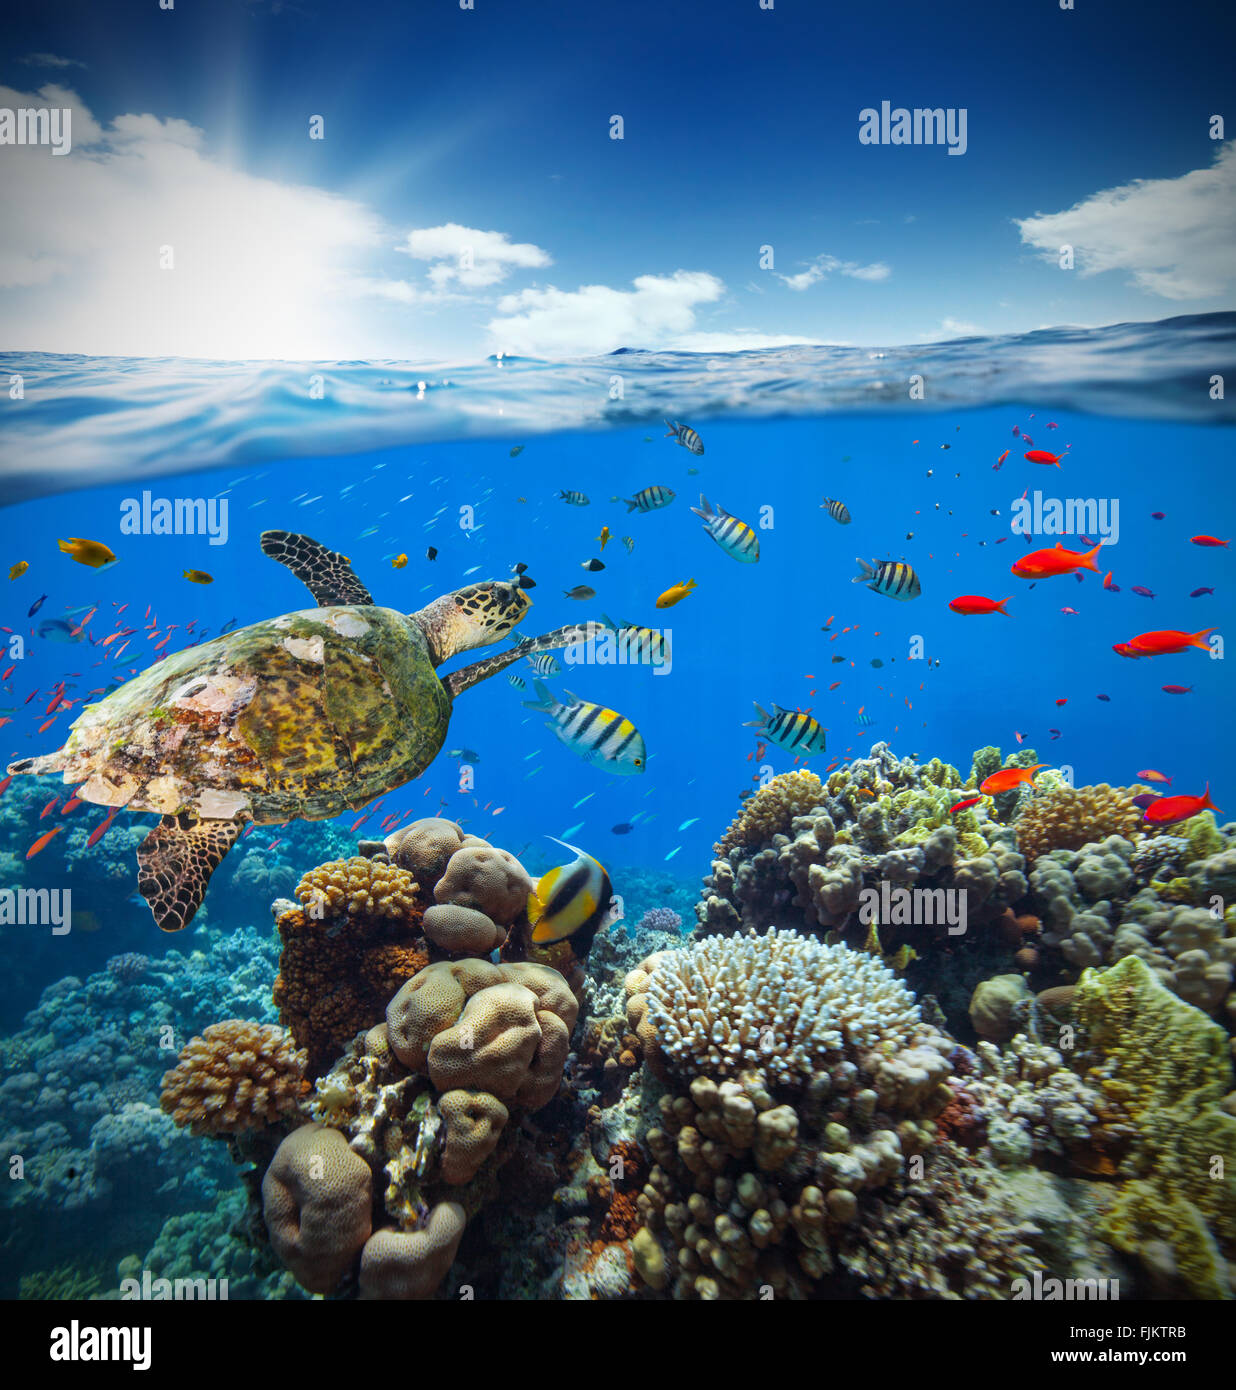 Underwater coral reef with horizon and water surface - Stock Image